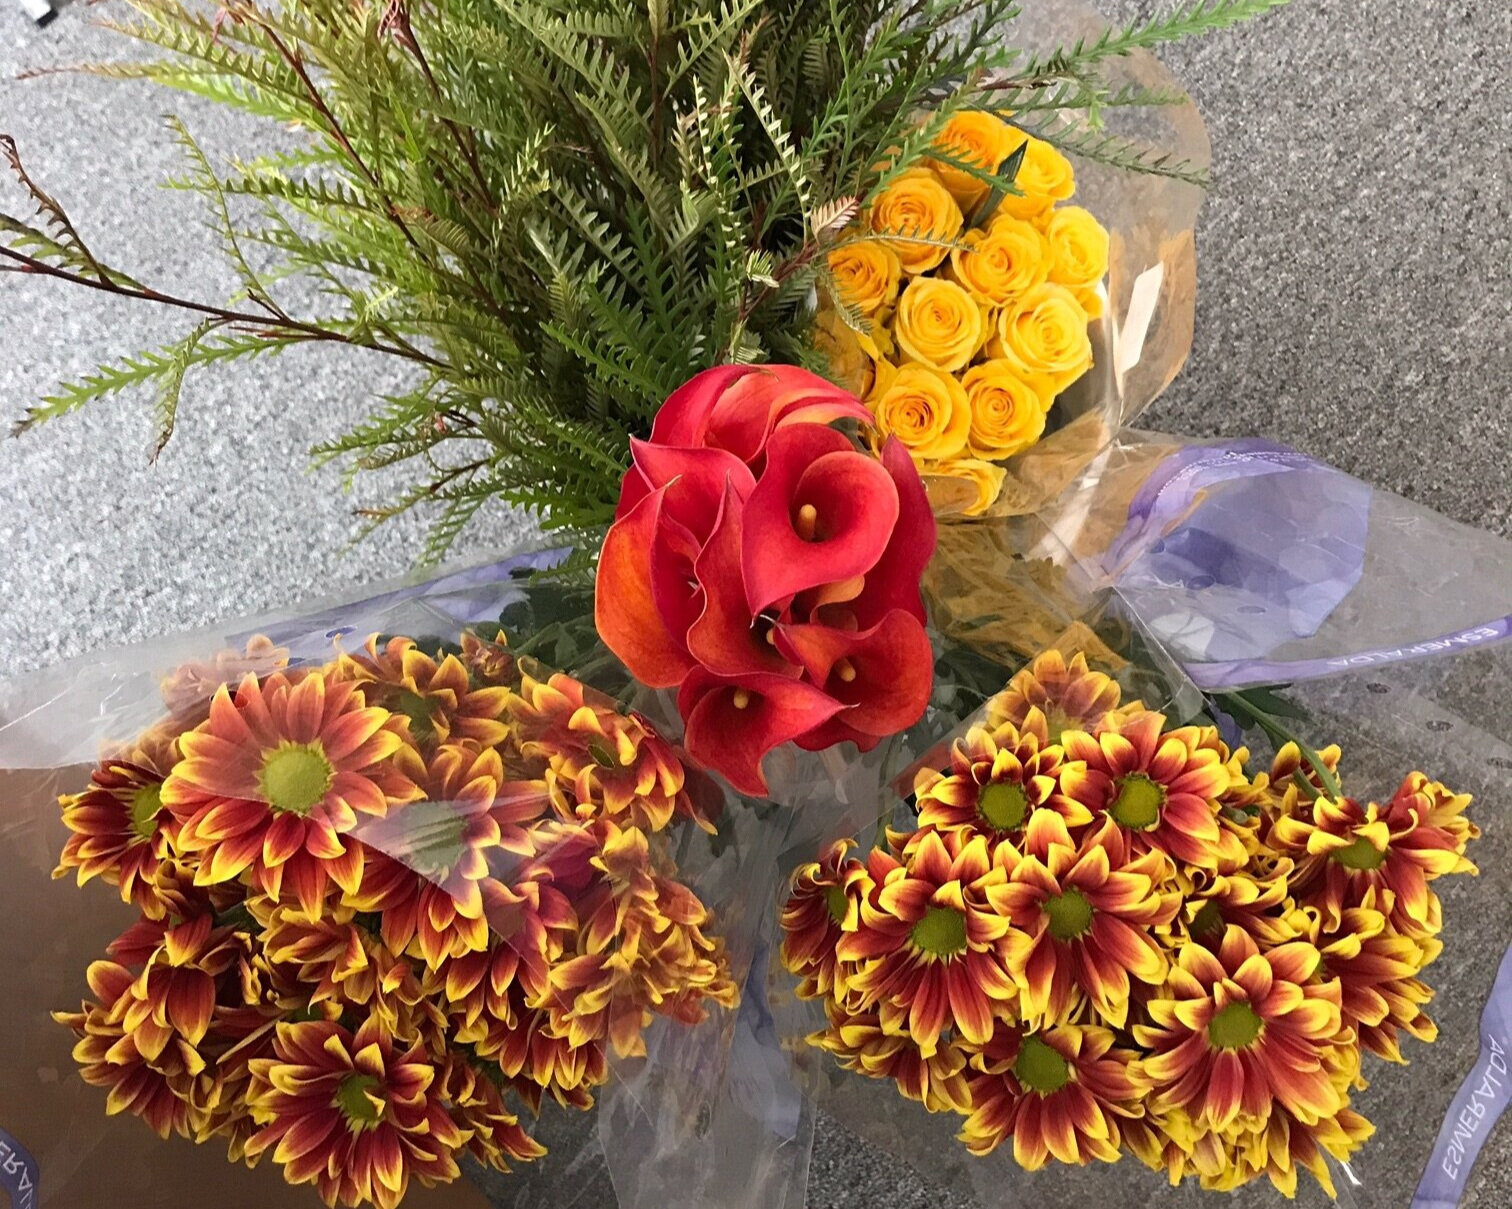 Yellow roses, yellow/rust button daisies, rust mini calla lilies, and grevilla